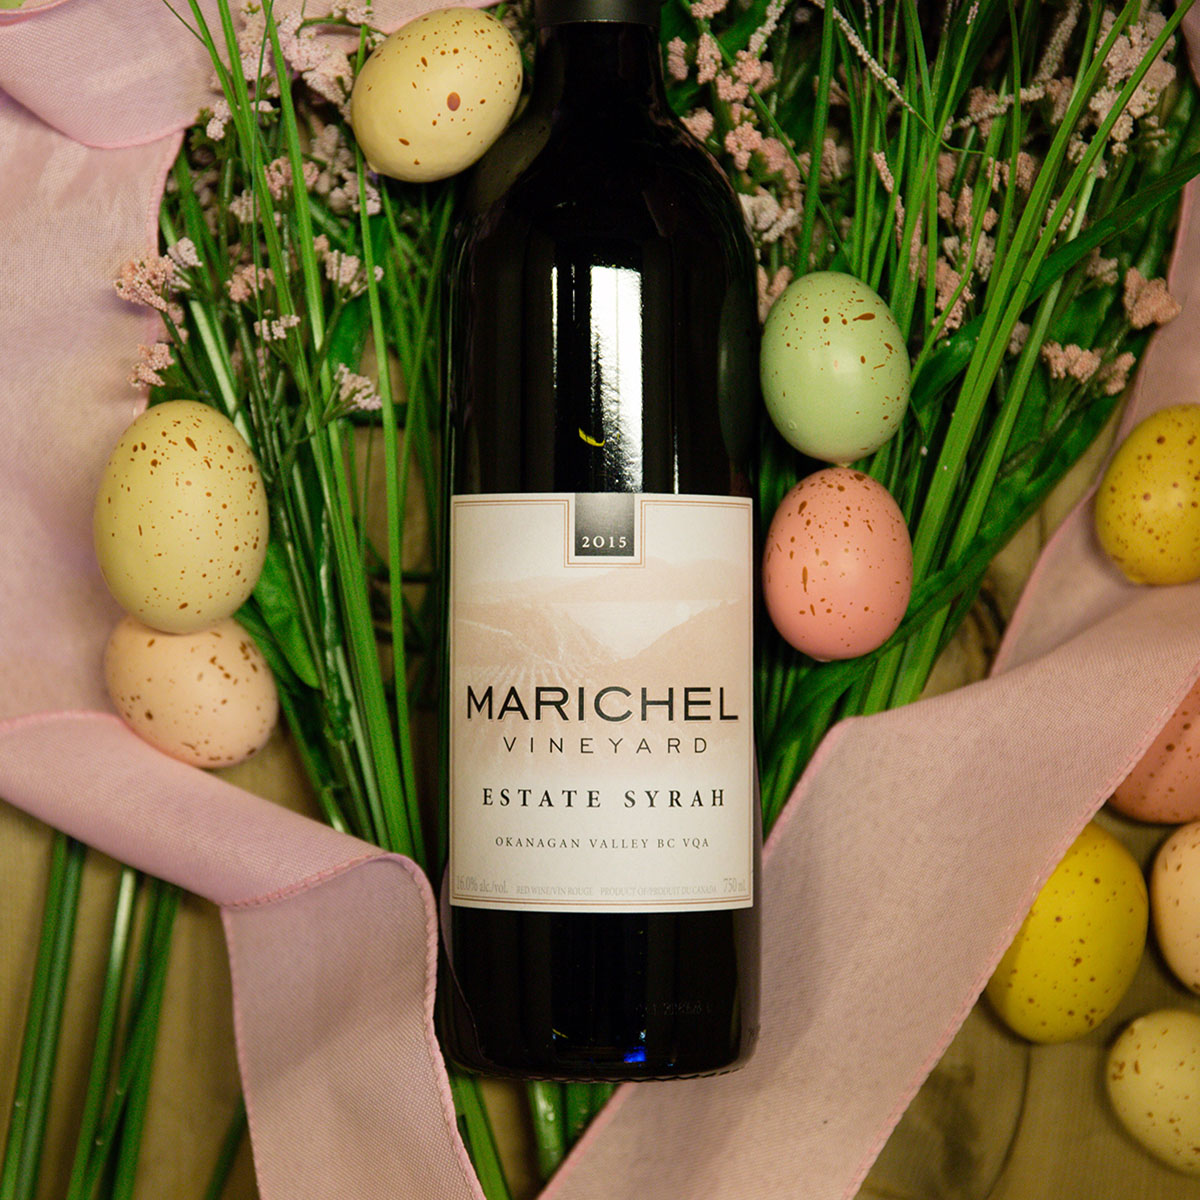 Marichel Estate Syrah - Serving a boldly flavoured roast lamb for dinner? Match those big flavours with an equally big wine. This syrah is bursting with dark berries, plum, a leathery, smoky finish and refined tannins.$39.49 (750 ml) Okanagan Valley, BC